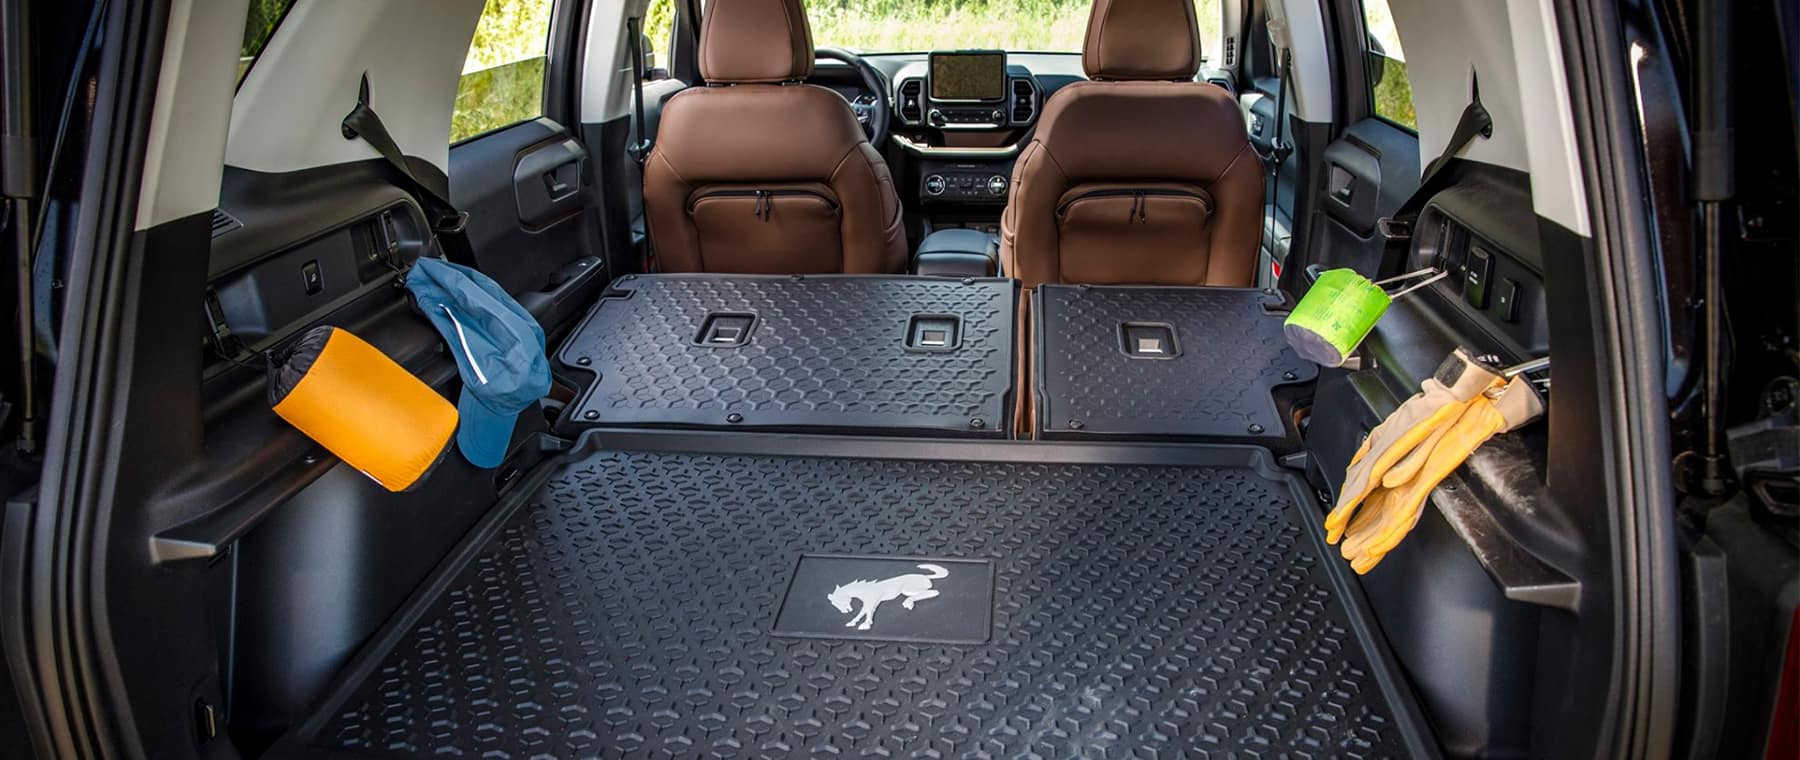 2021 Bronco trunk storage